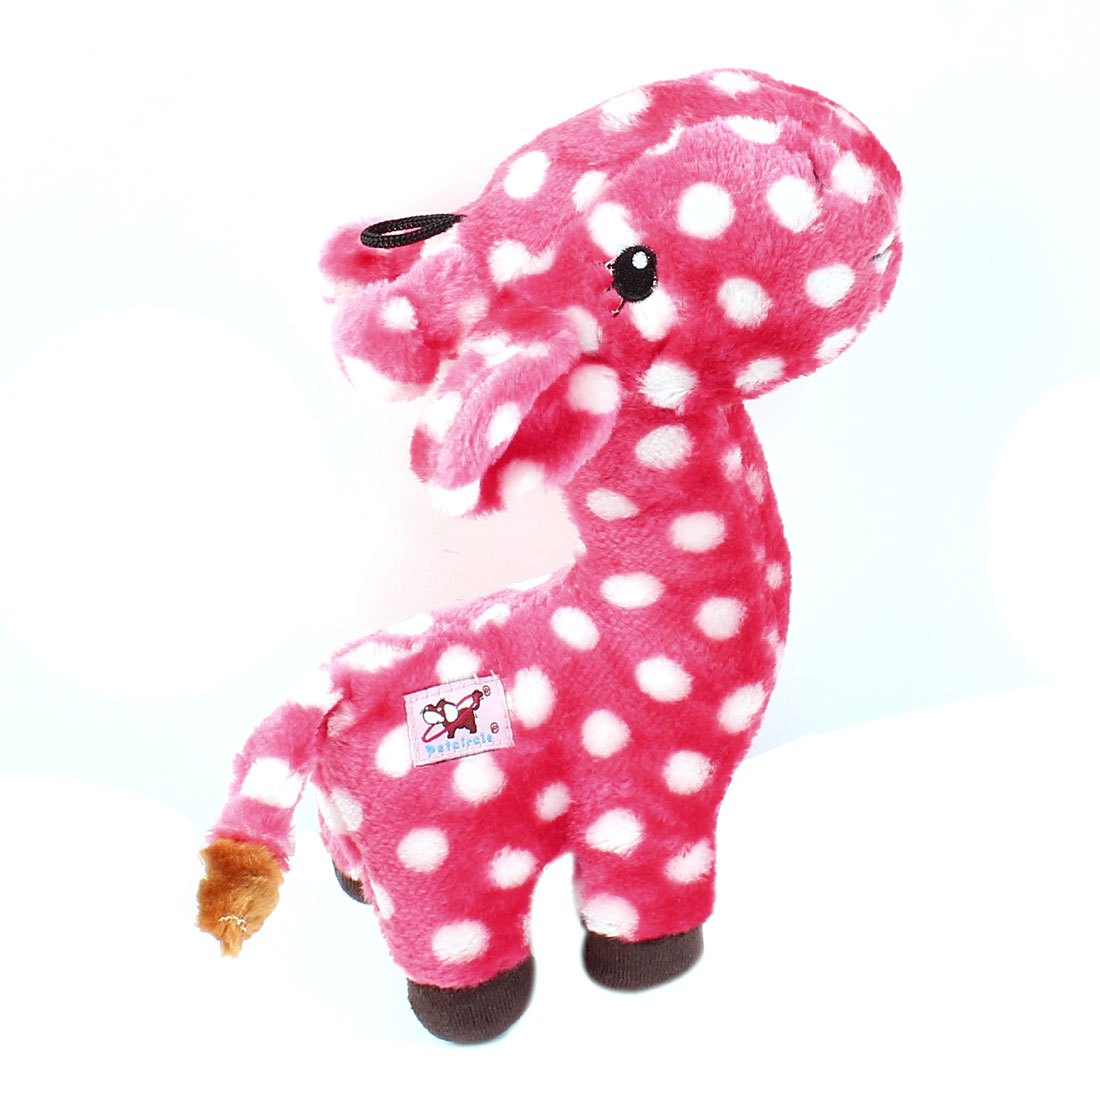 Dot Pattern Giraffe Shaped Pet Dog Yorkie Squeaky Play Toy Pink White